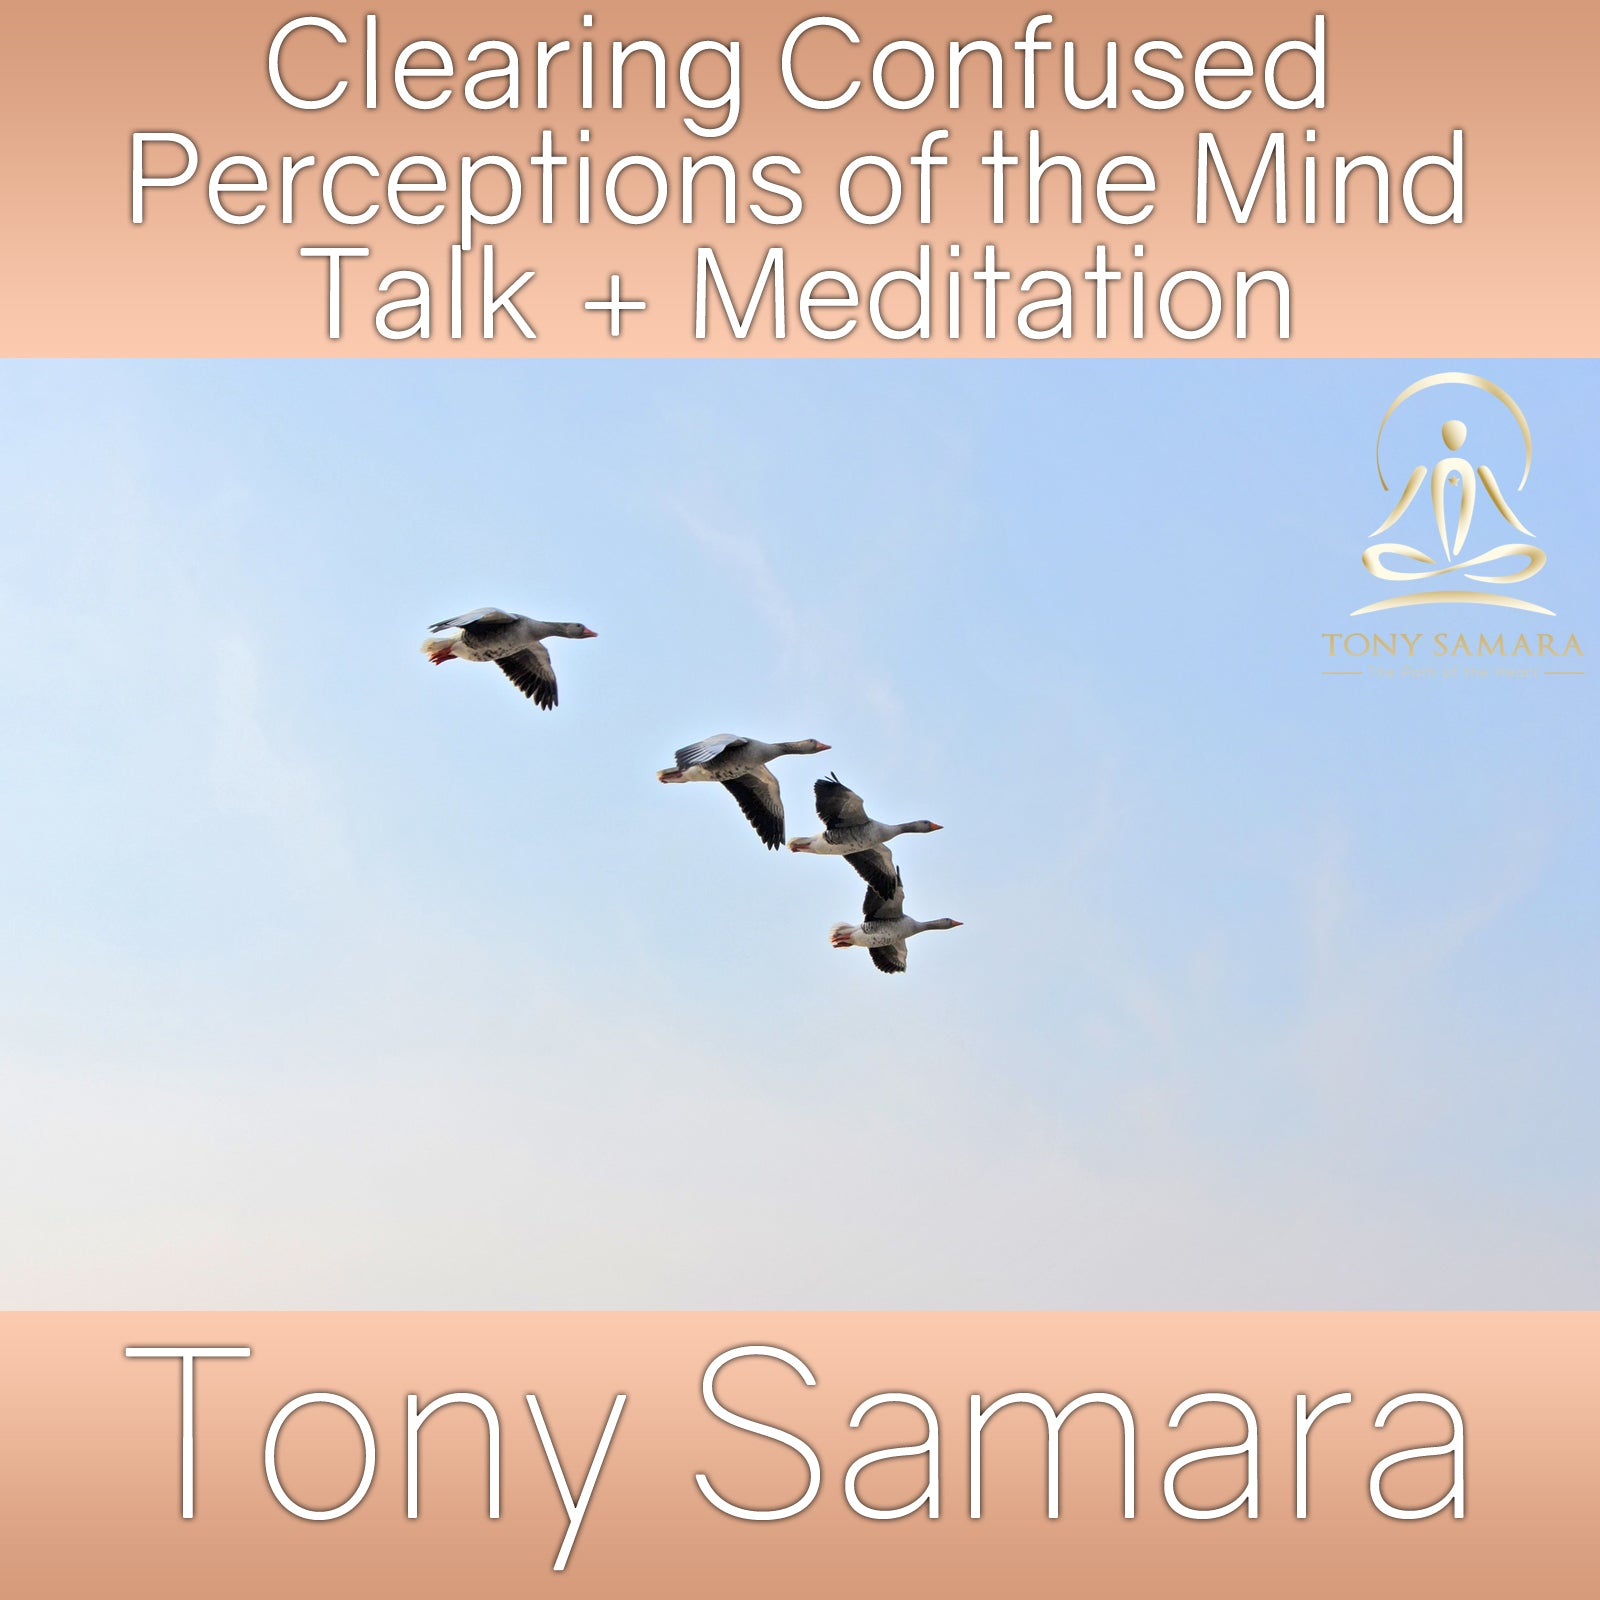 Clearing Confused Perceptions of the Mind Talk + Meditation (MP3 Audio Download) - Tony Samara Meditation